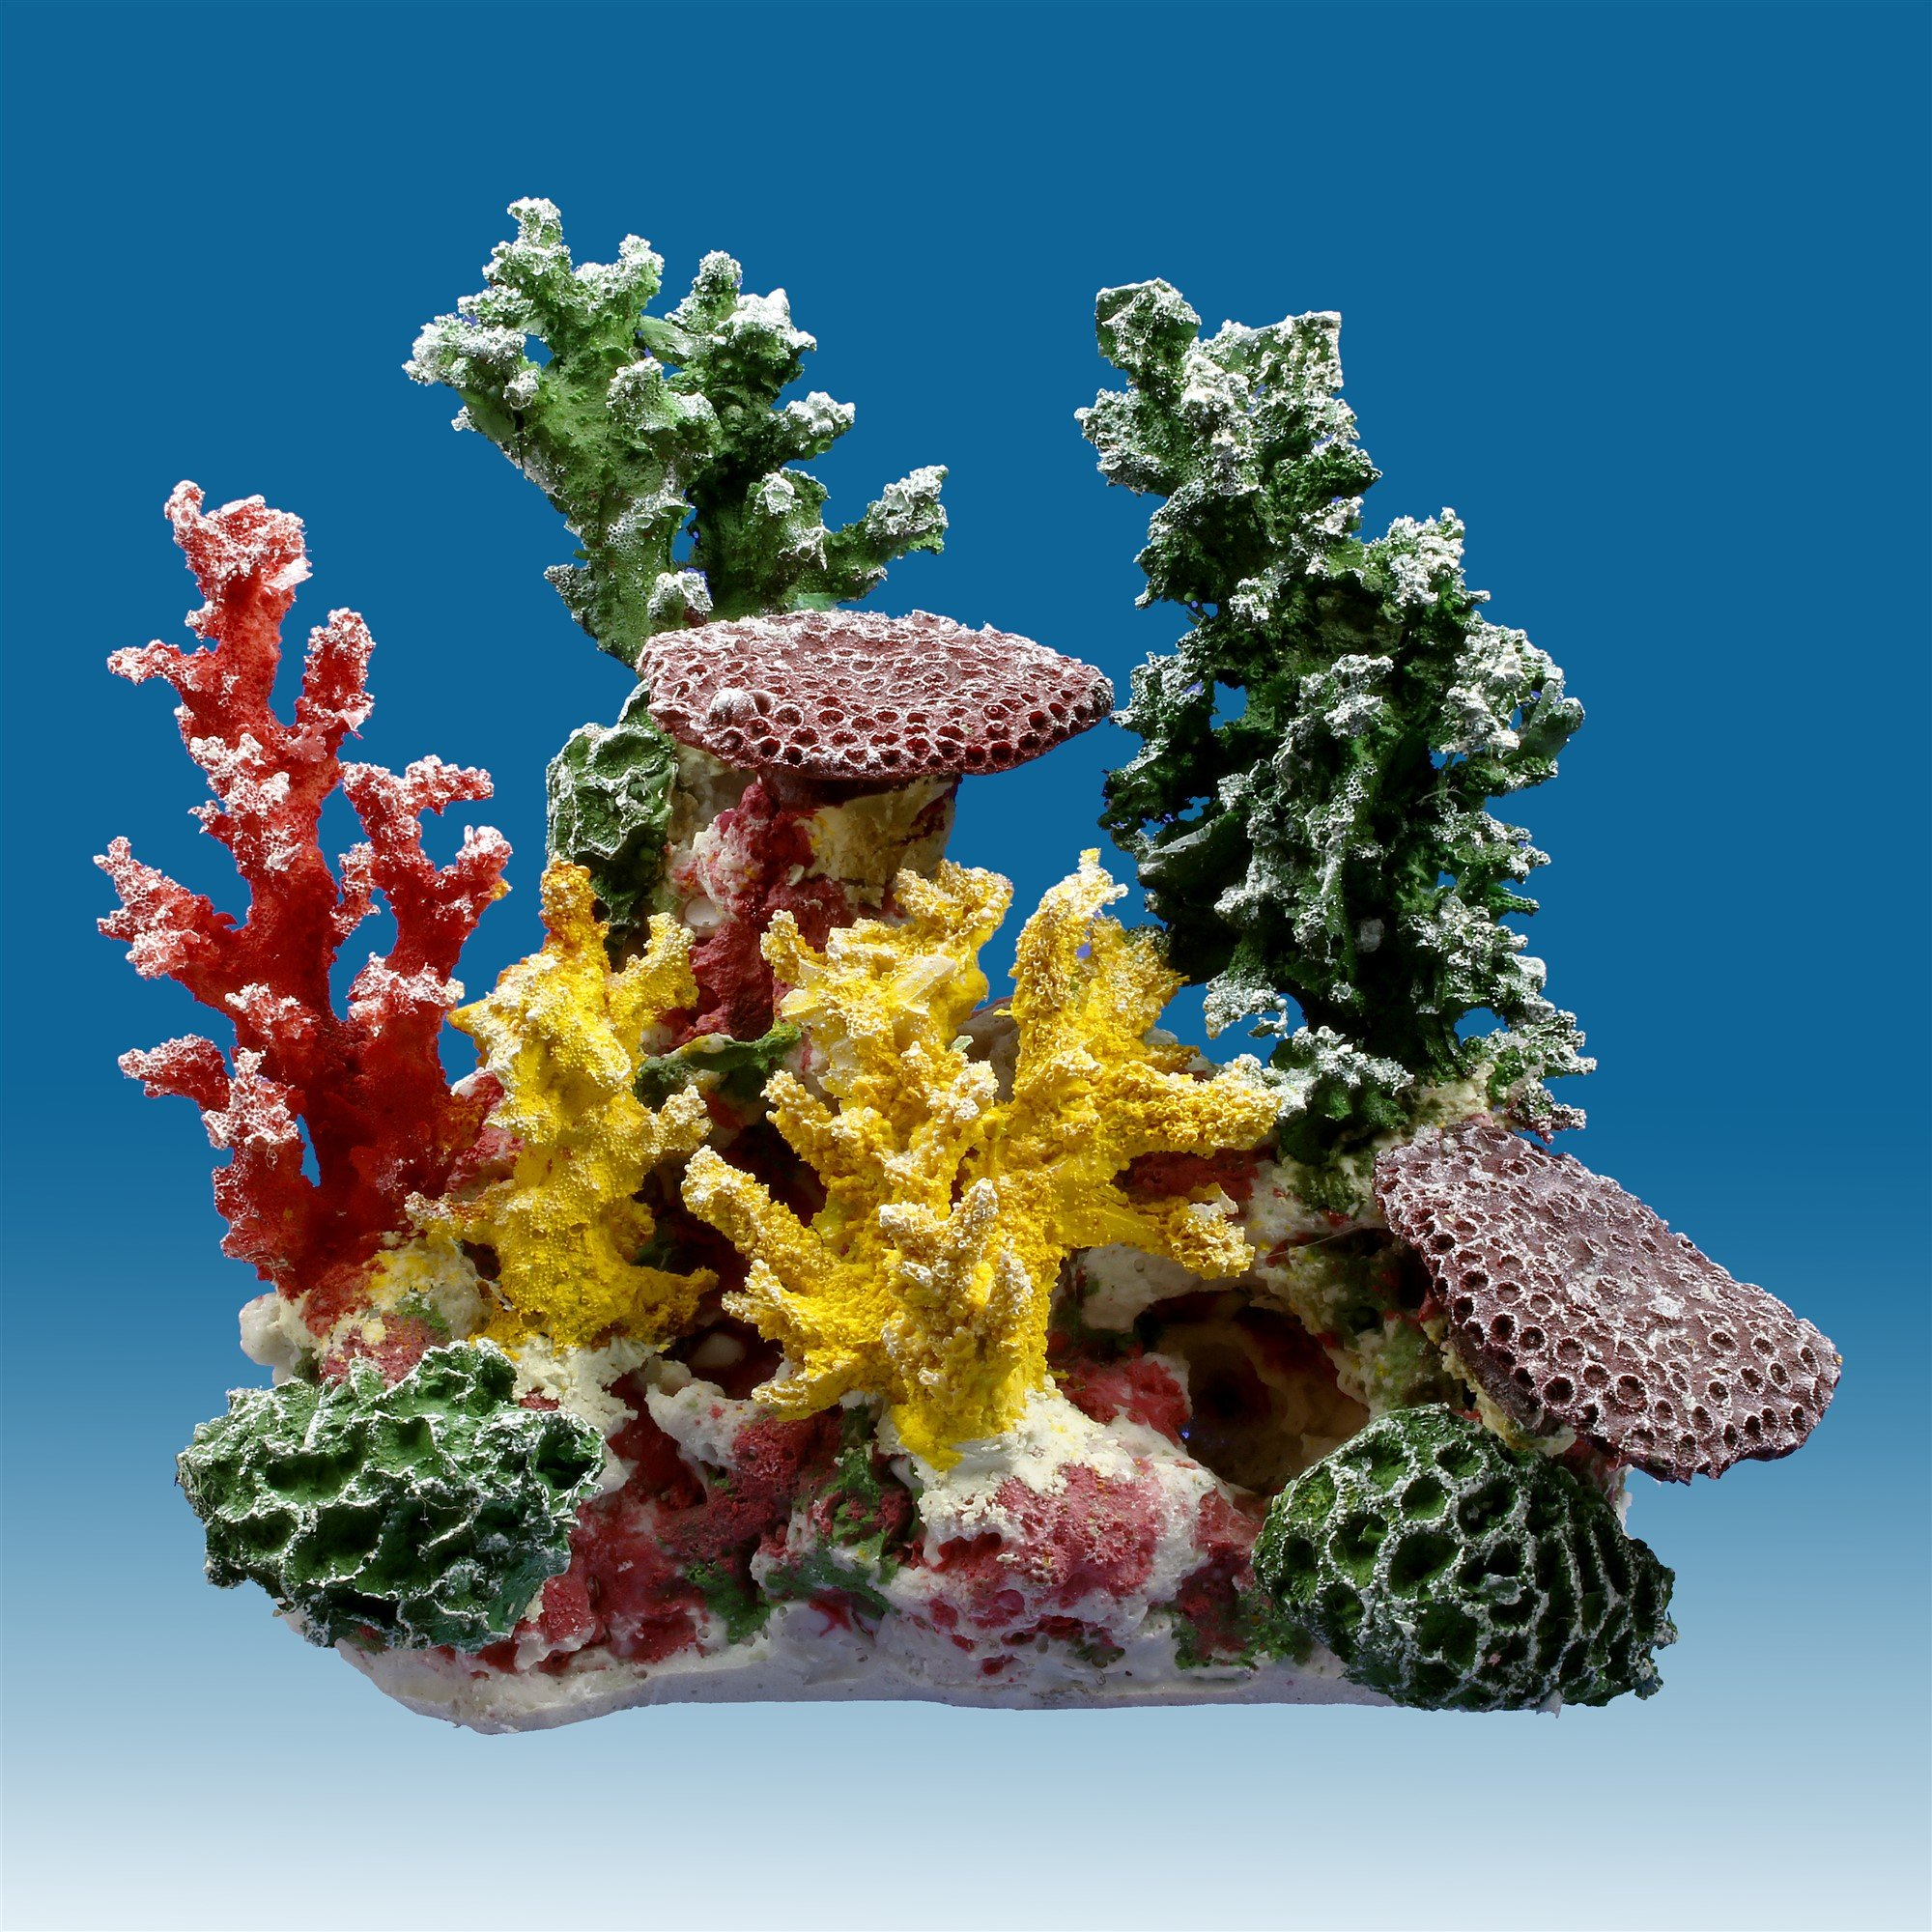 Instant Reef DM058 Artificial Coral Inserts Decor, Fake Coral Reef Decorations for Colorful Freshwater Fish Aquariums, Marine and Saltwater Fish Tanks by Instant Reef